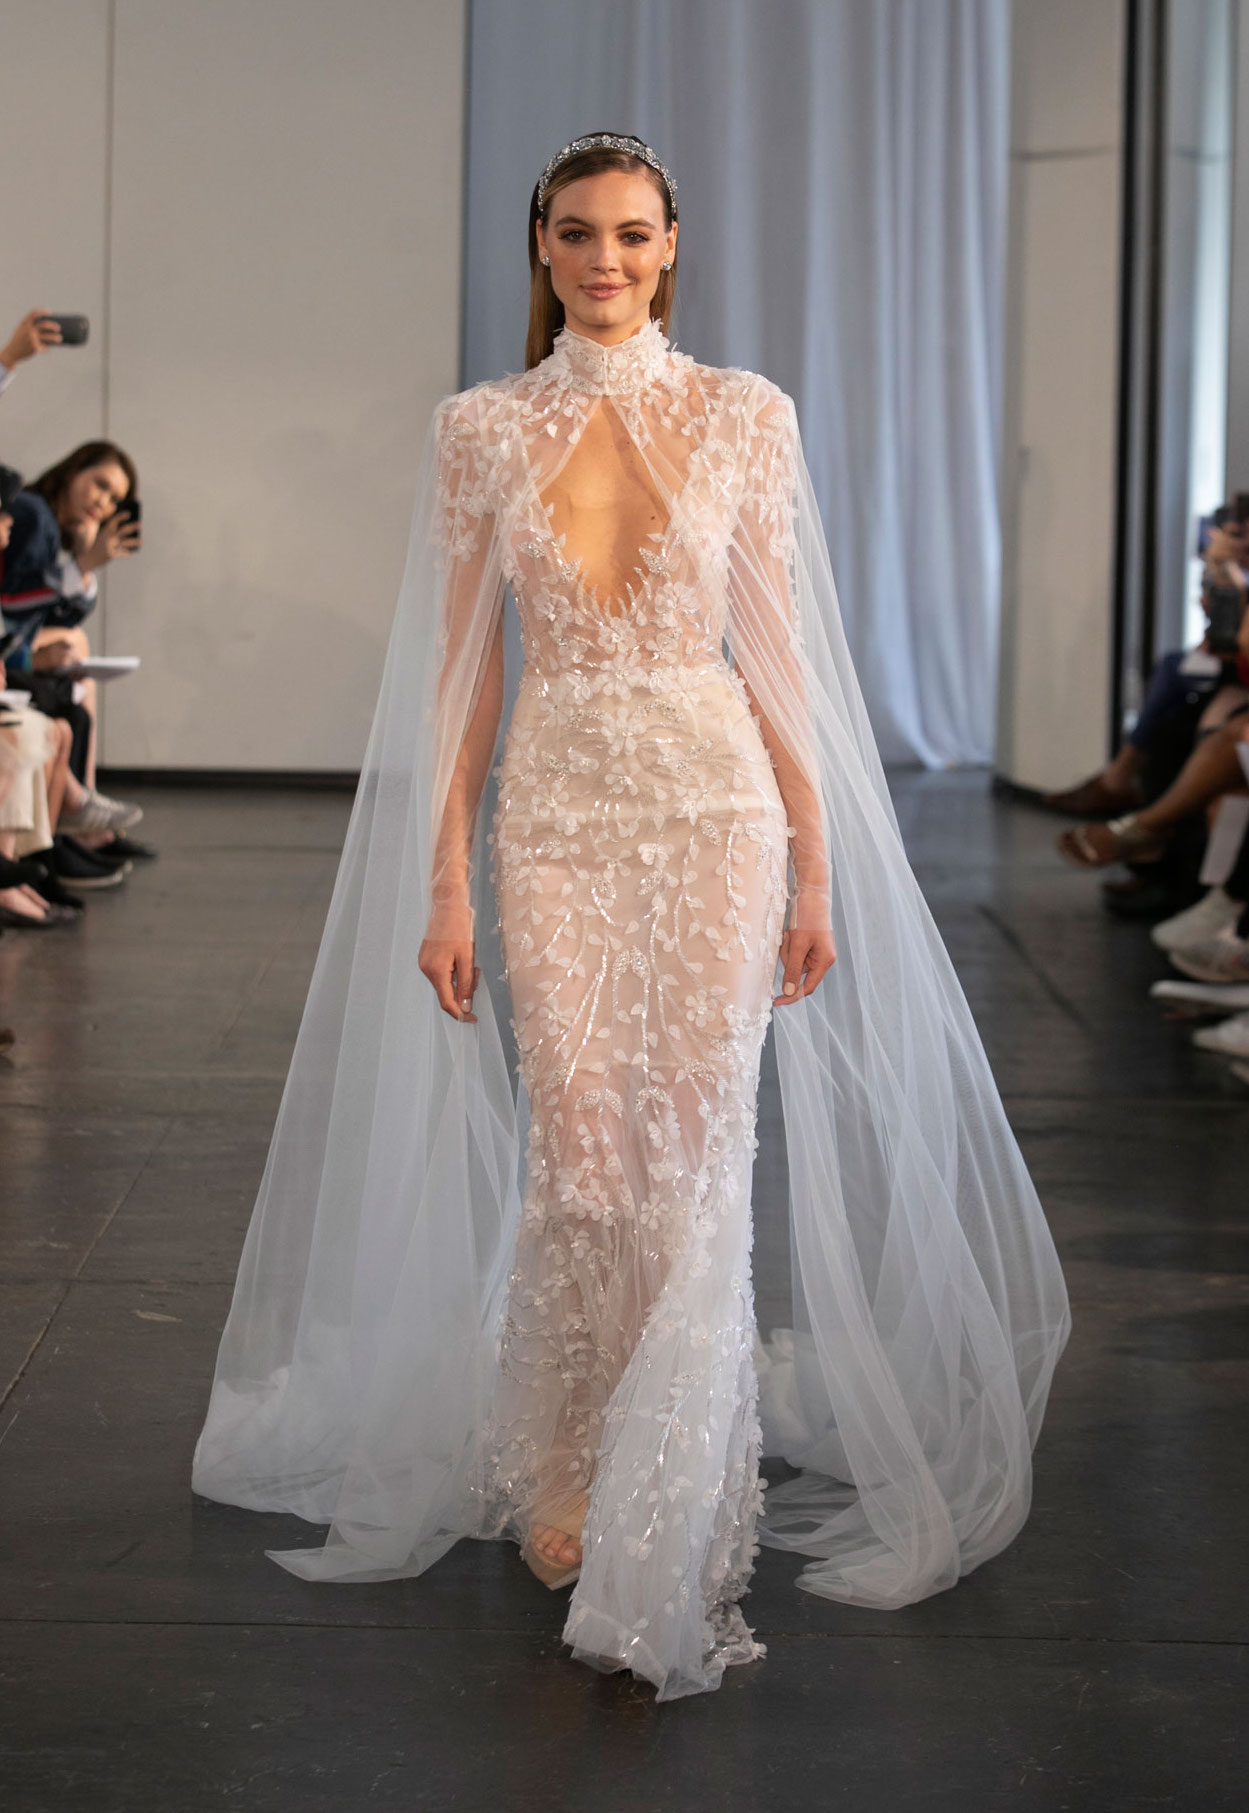 Halloween-inspired wedding dress with cape berta fall 2019